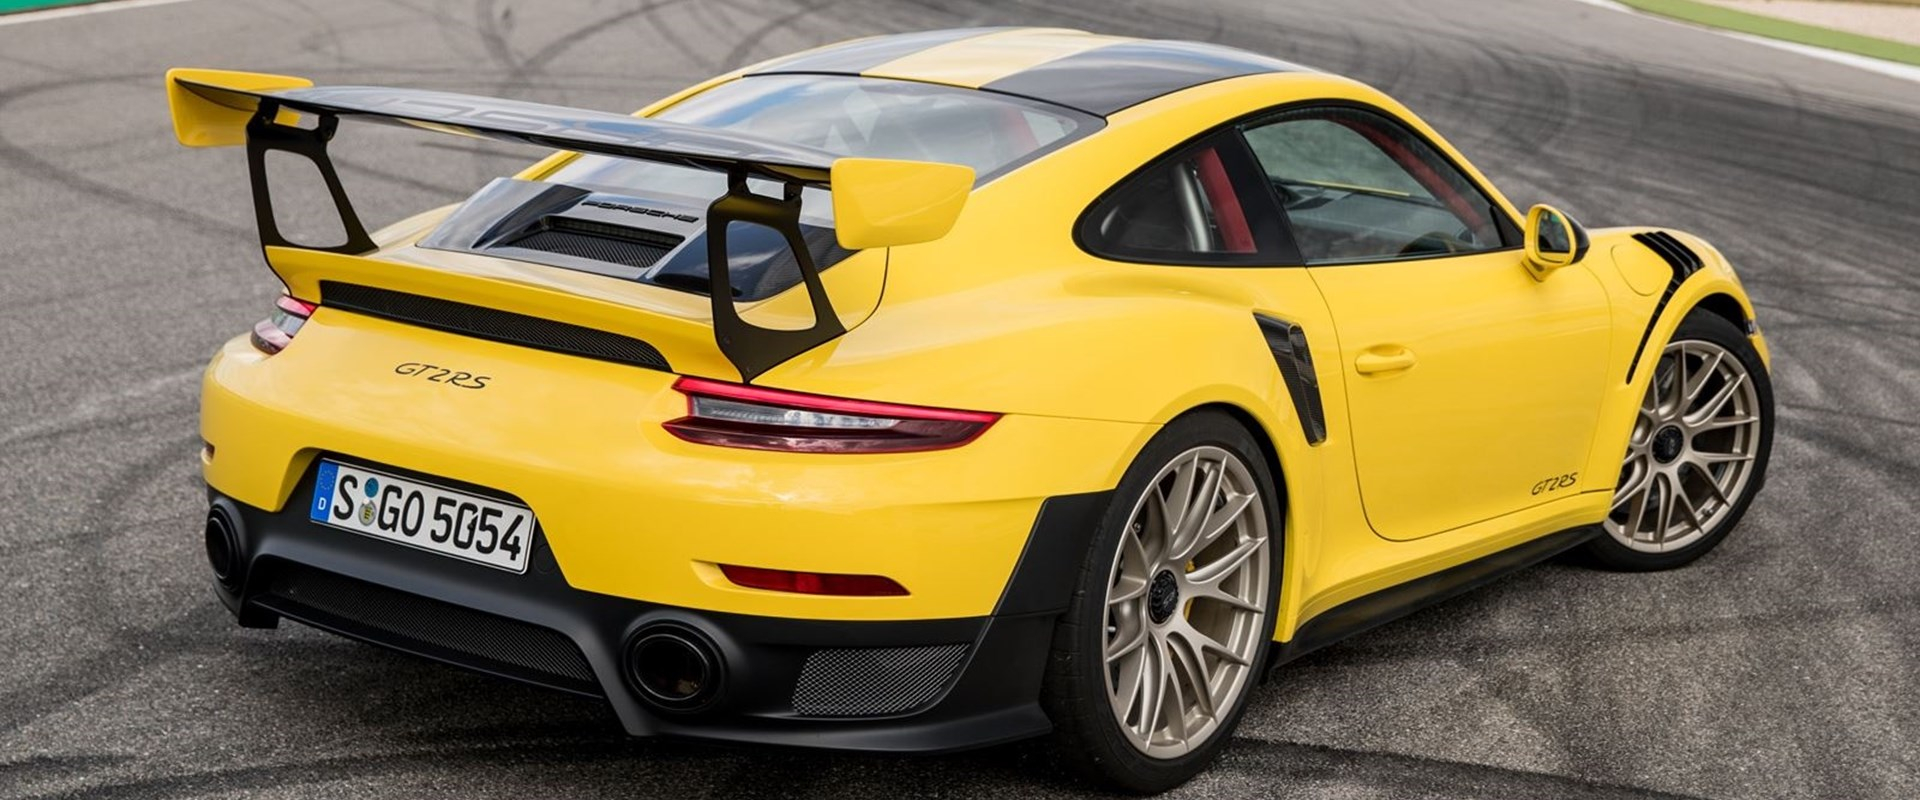 10 Sports Cars You Can Buy Instead Of ONE Brand New Porsche 911 ...